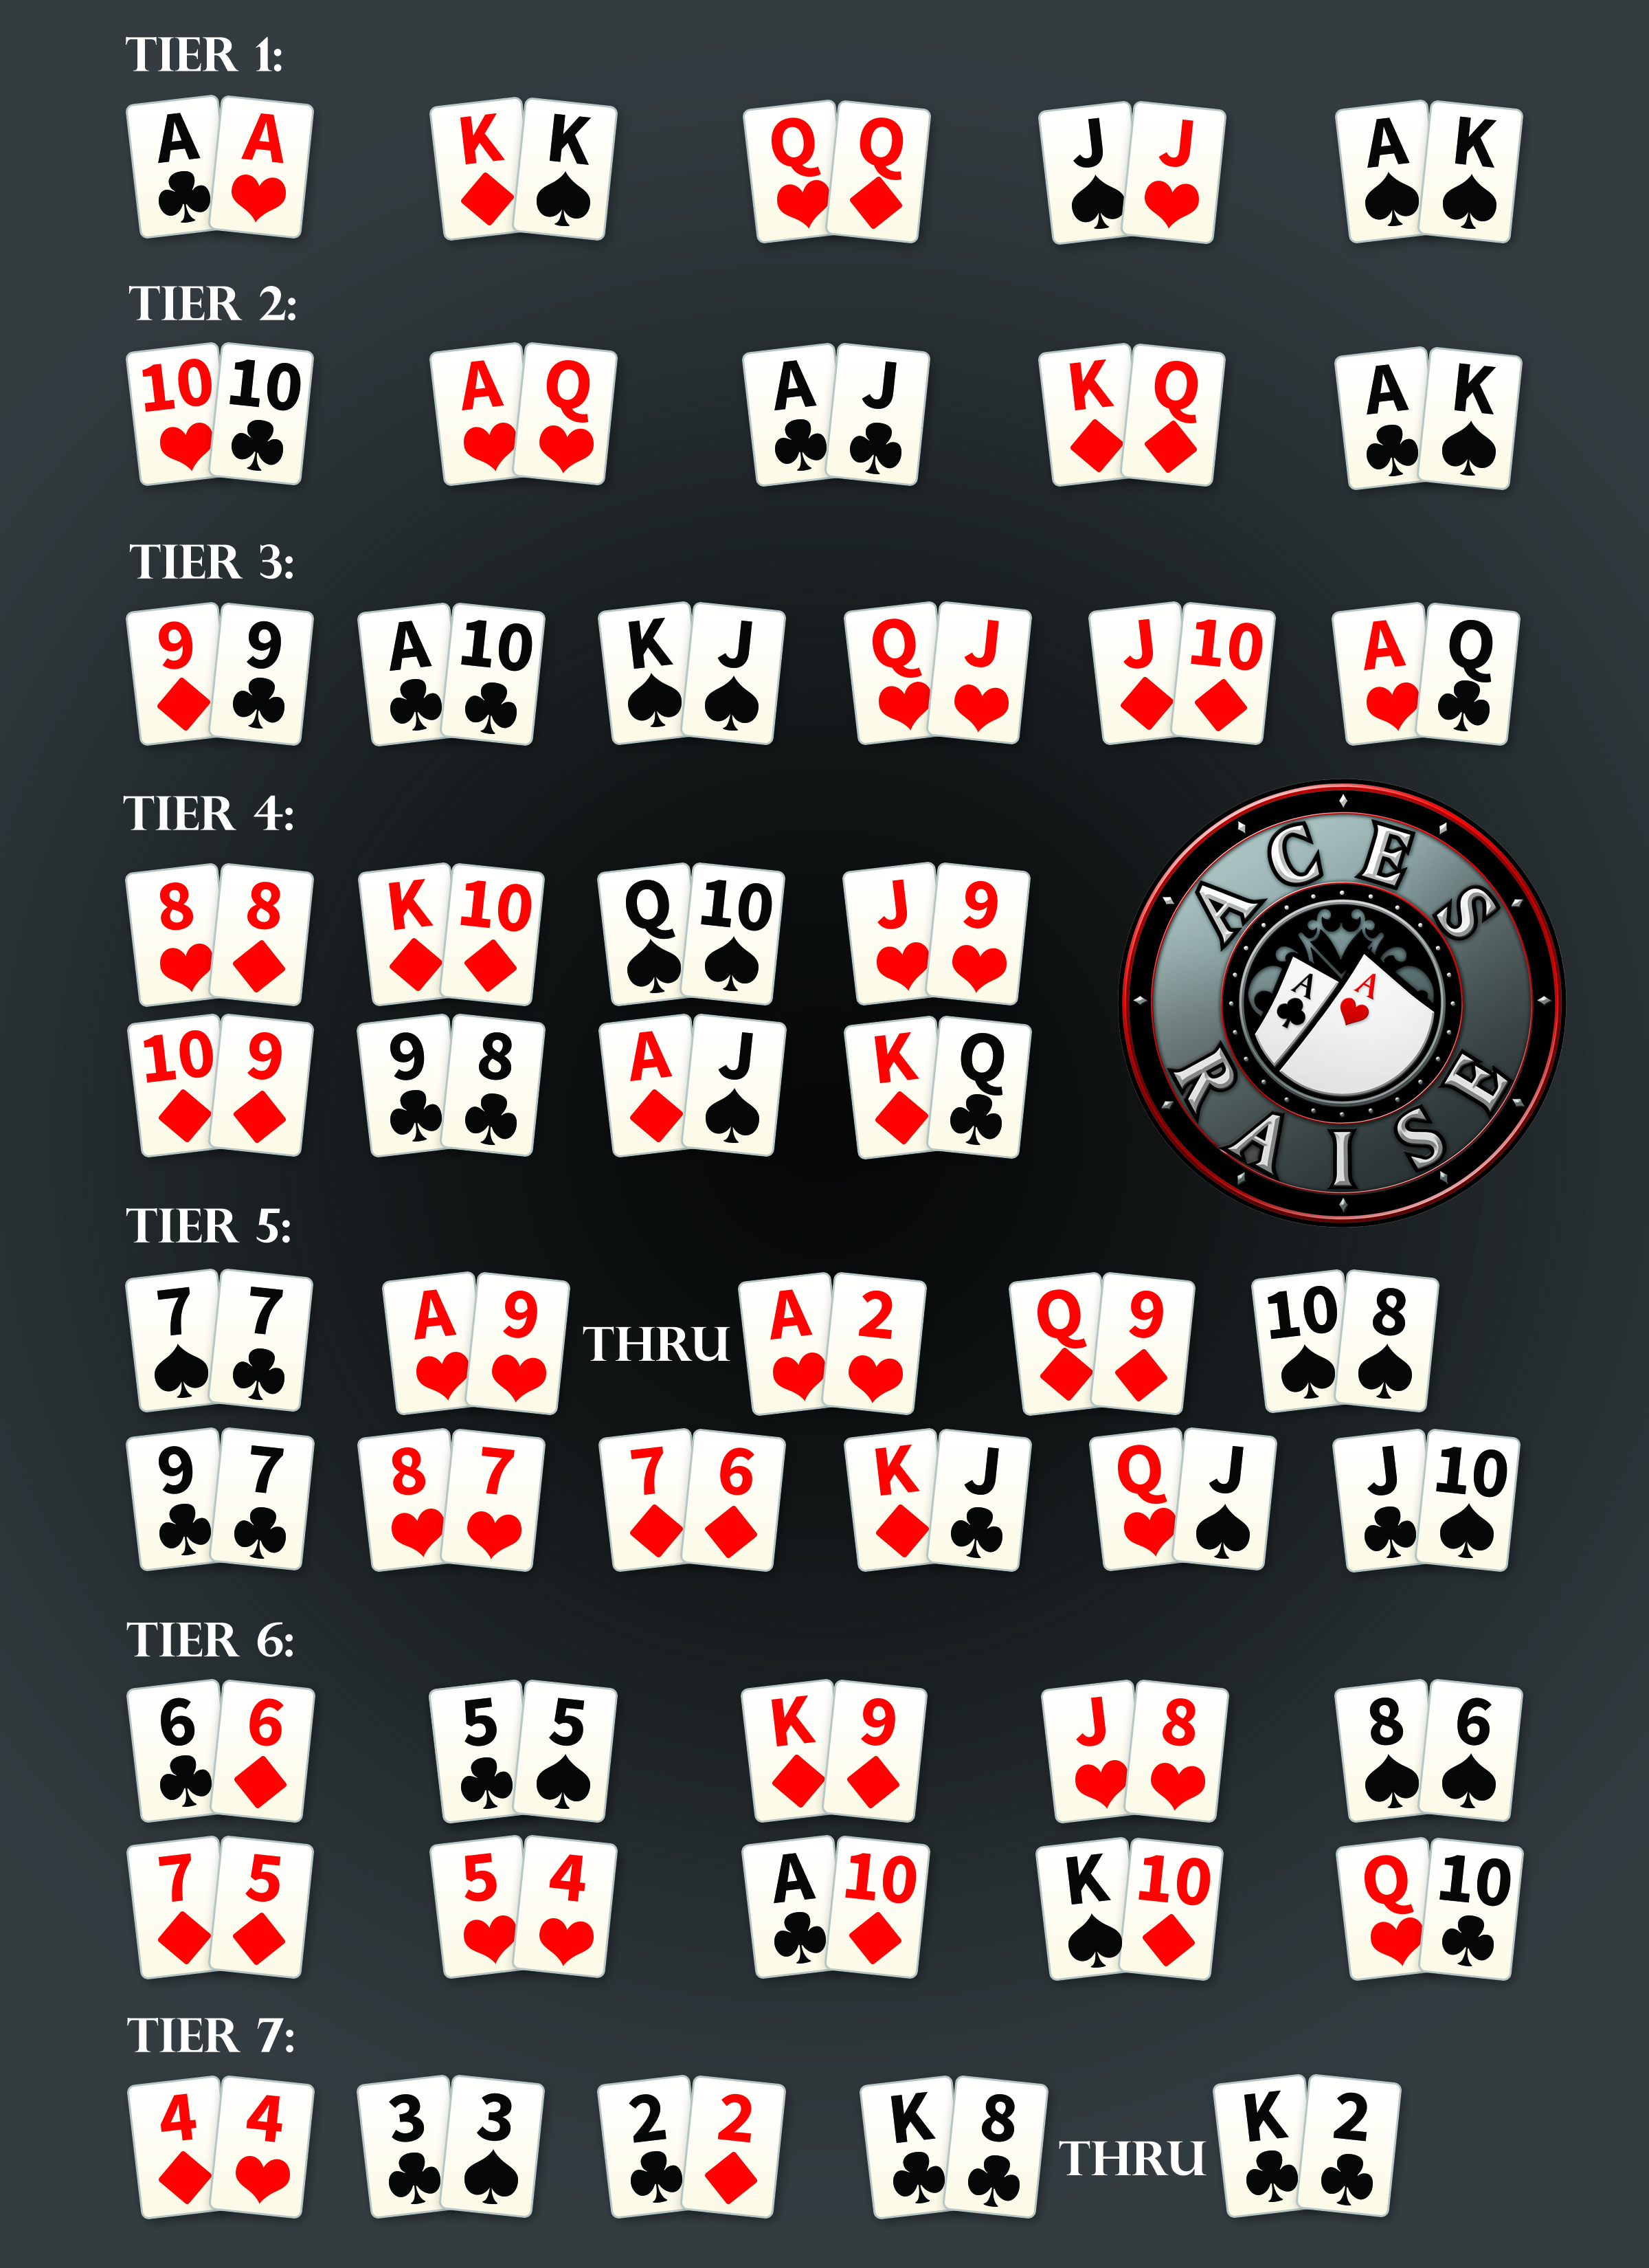 lowest poker hand